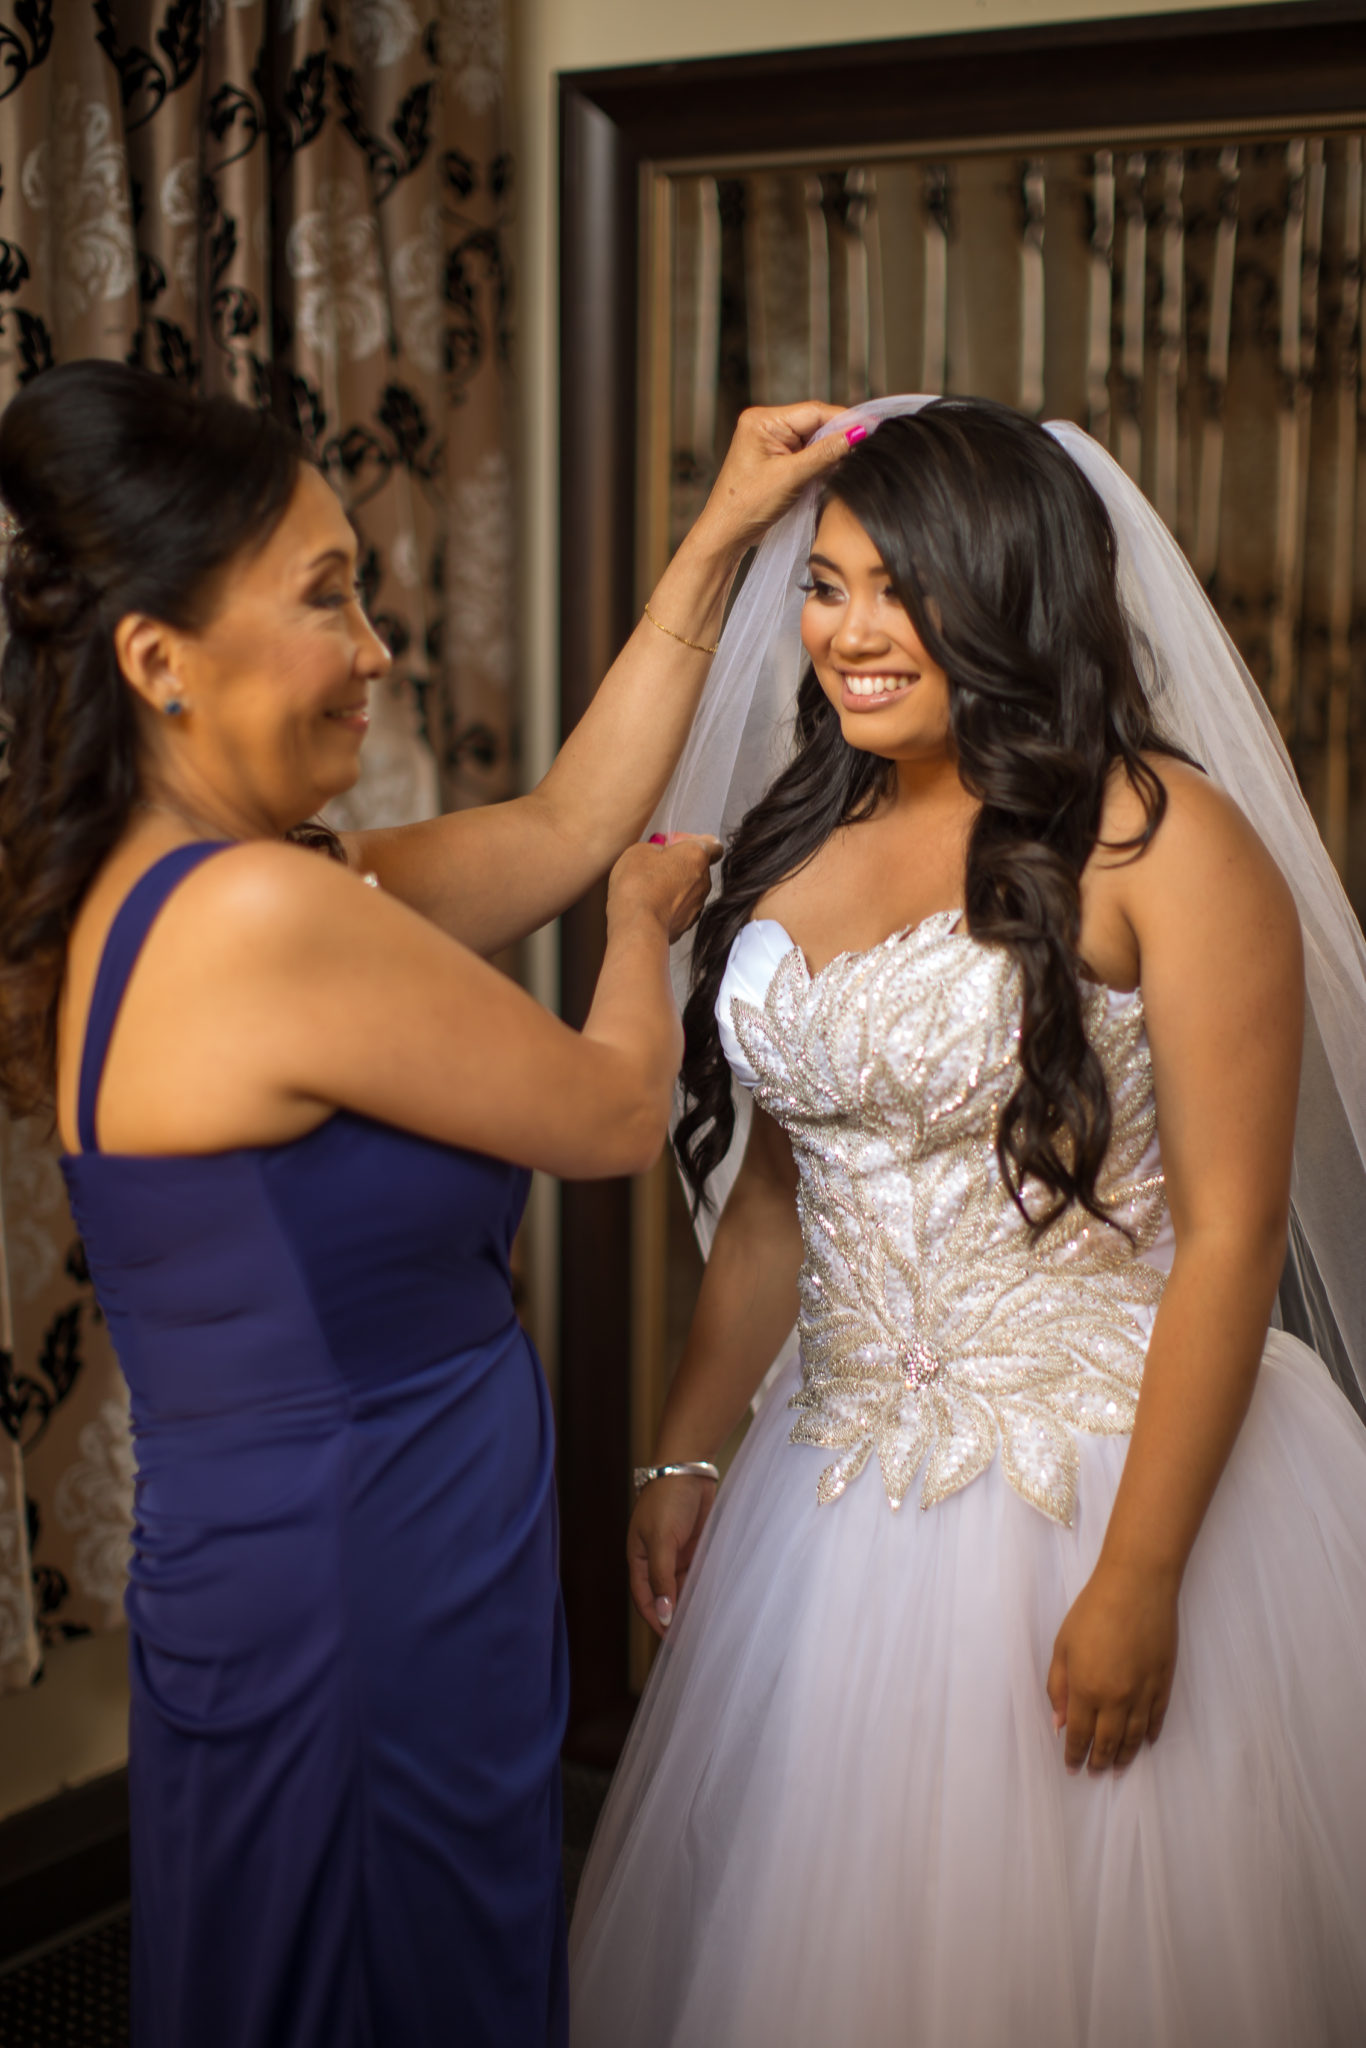 Aleshchenko Ladies getting ready 24 GLAM MONTE CRISTO BALLROOM WEDDING | EVERETT WEDDING PHOTOGRAPHER